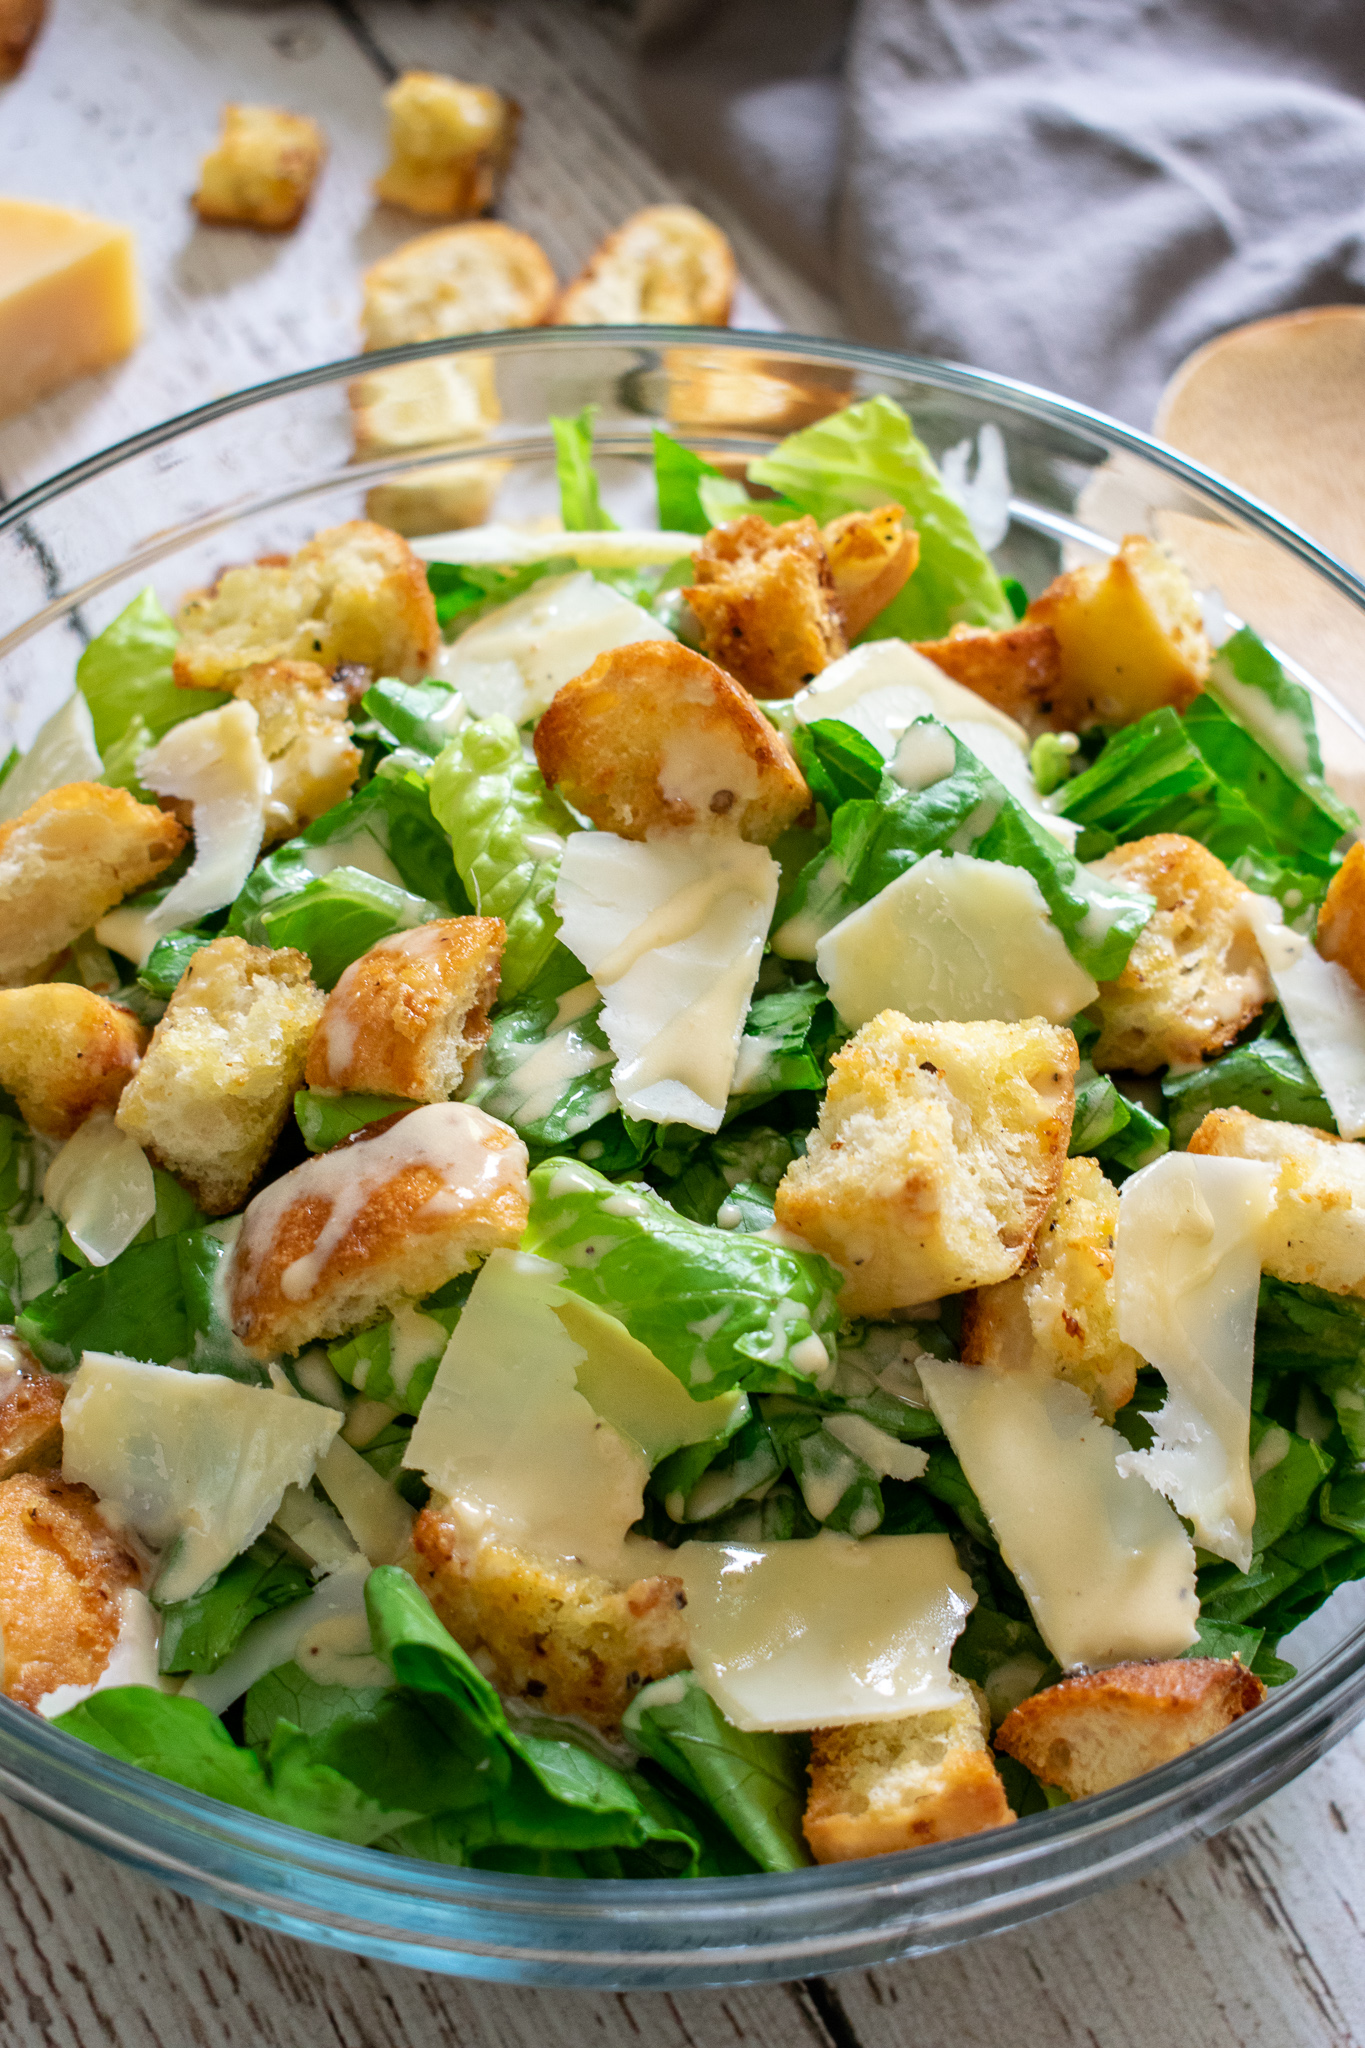 Crisp romaine lettuce chopped up in a bowl with grated parmesan, parmesan garlic croutons and homemade caesar dressing.